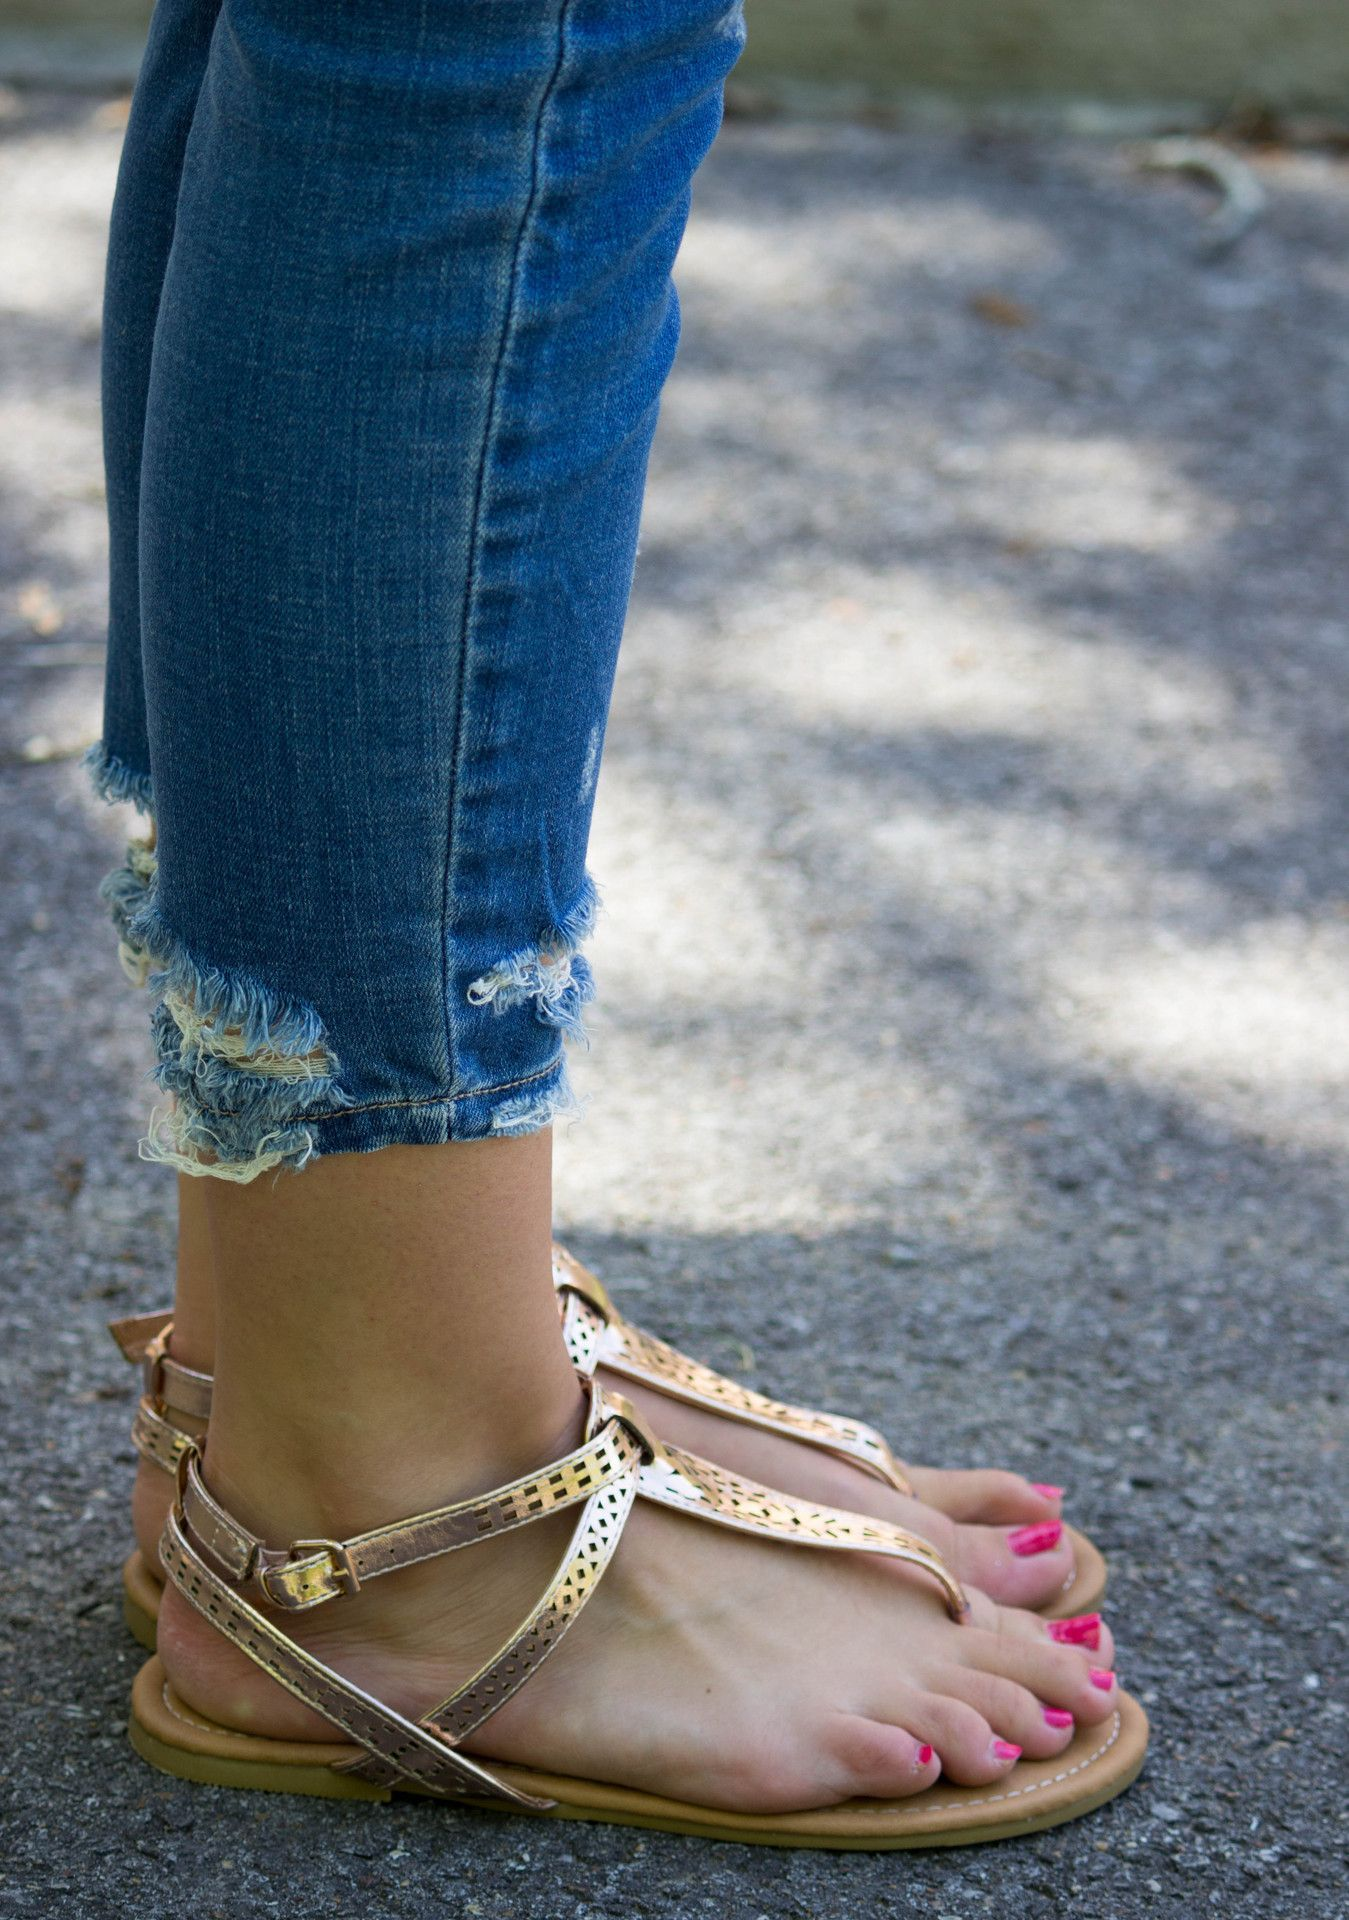 With Good Reason Sandals: Rose Gold